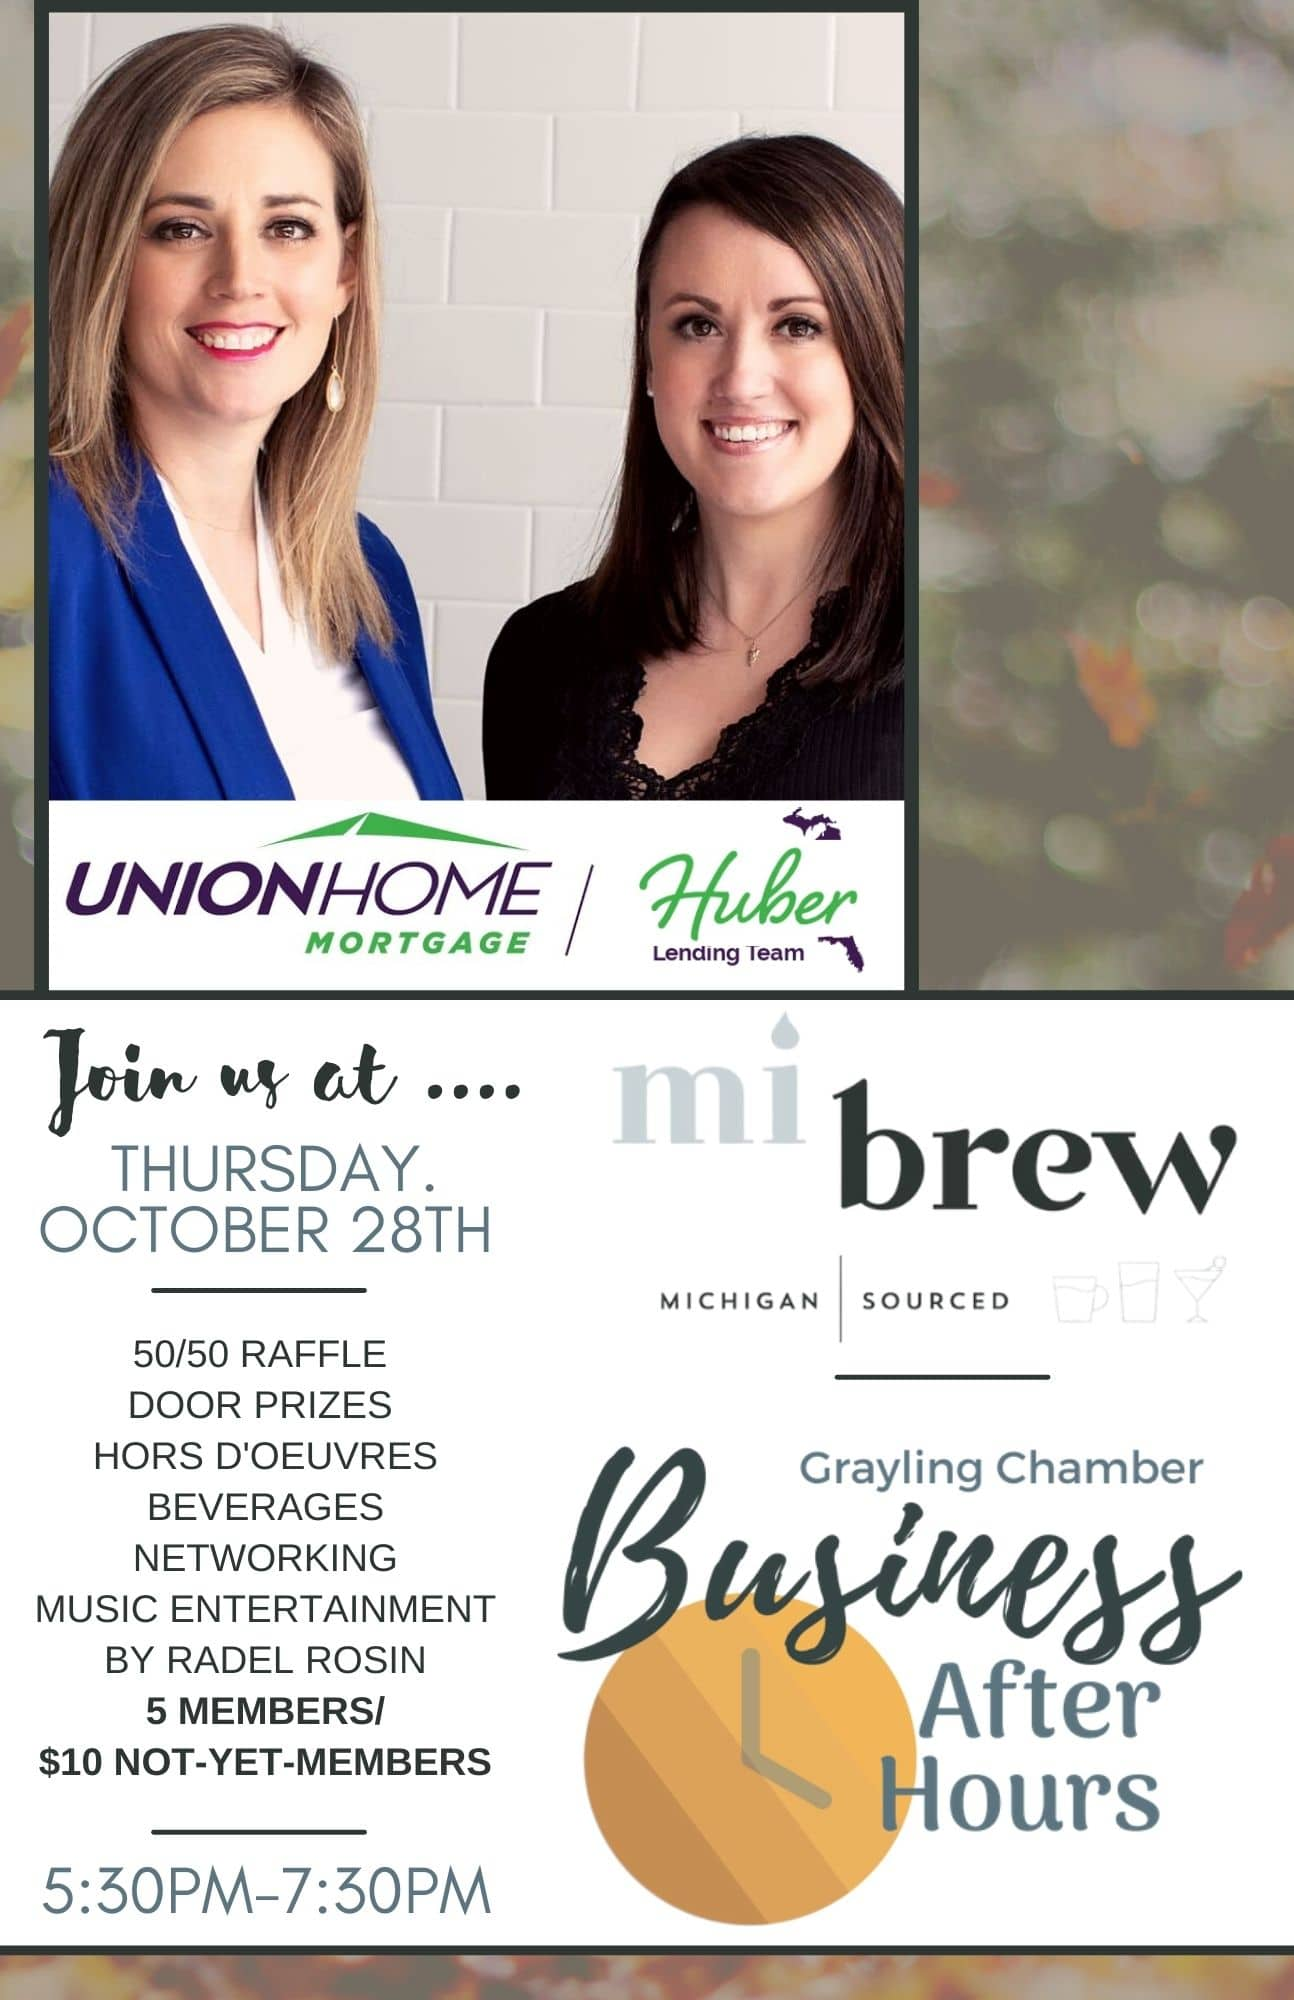 UPCOMING OCTOBER BUSINESS AFTER HOURS